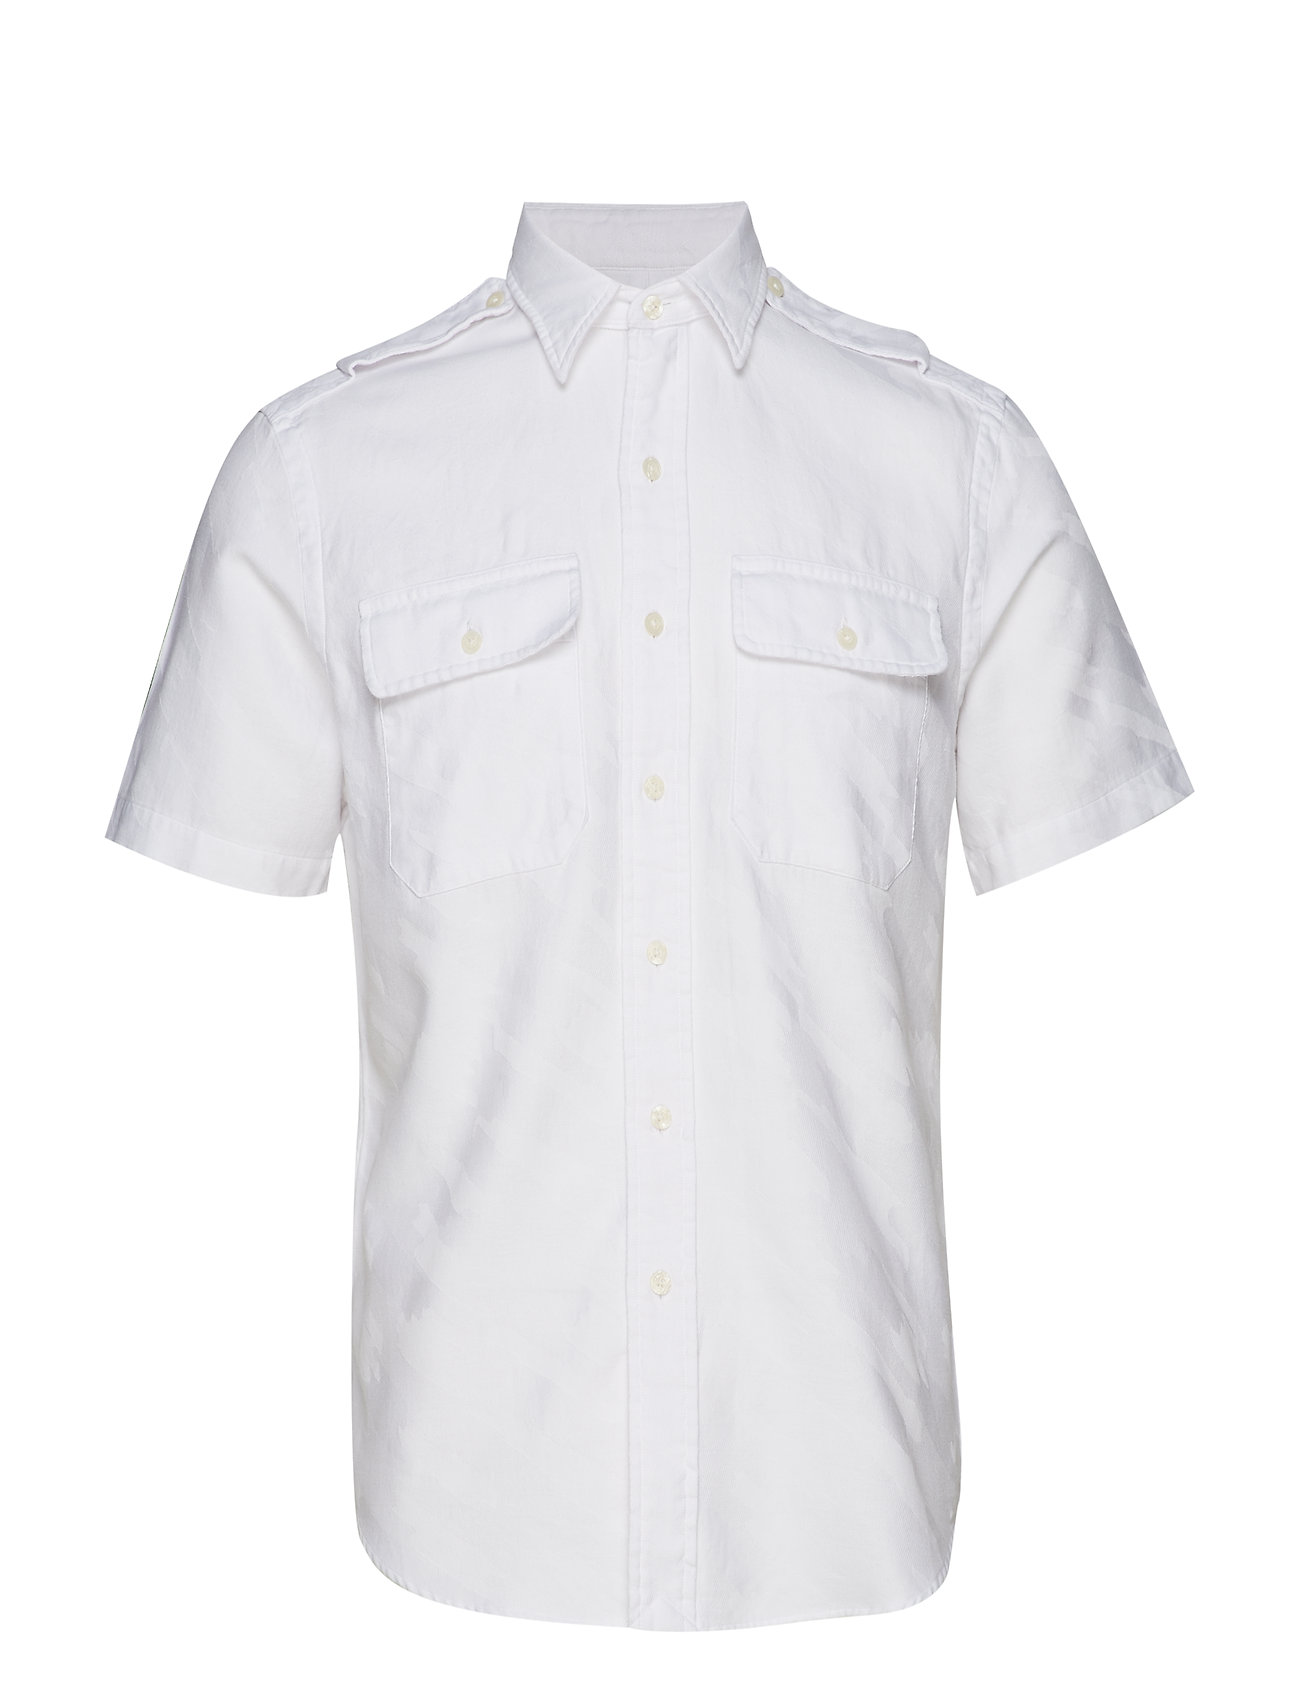 Polo Ralph Lauren Custom Fit White Camo Shirt - 4027 WHITE CAMO